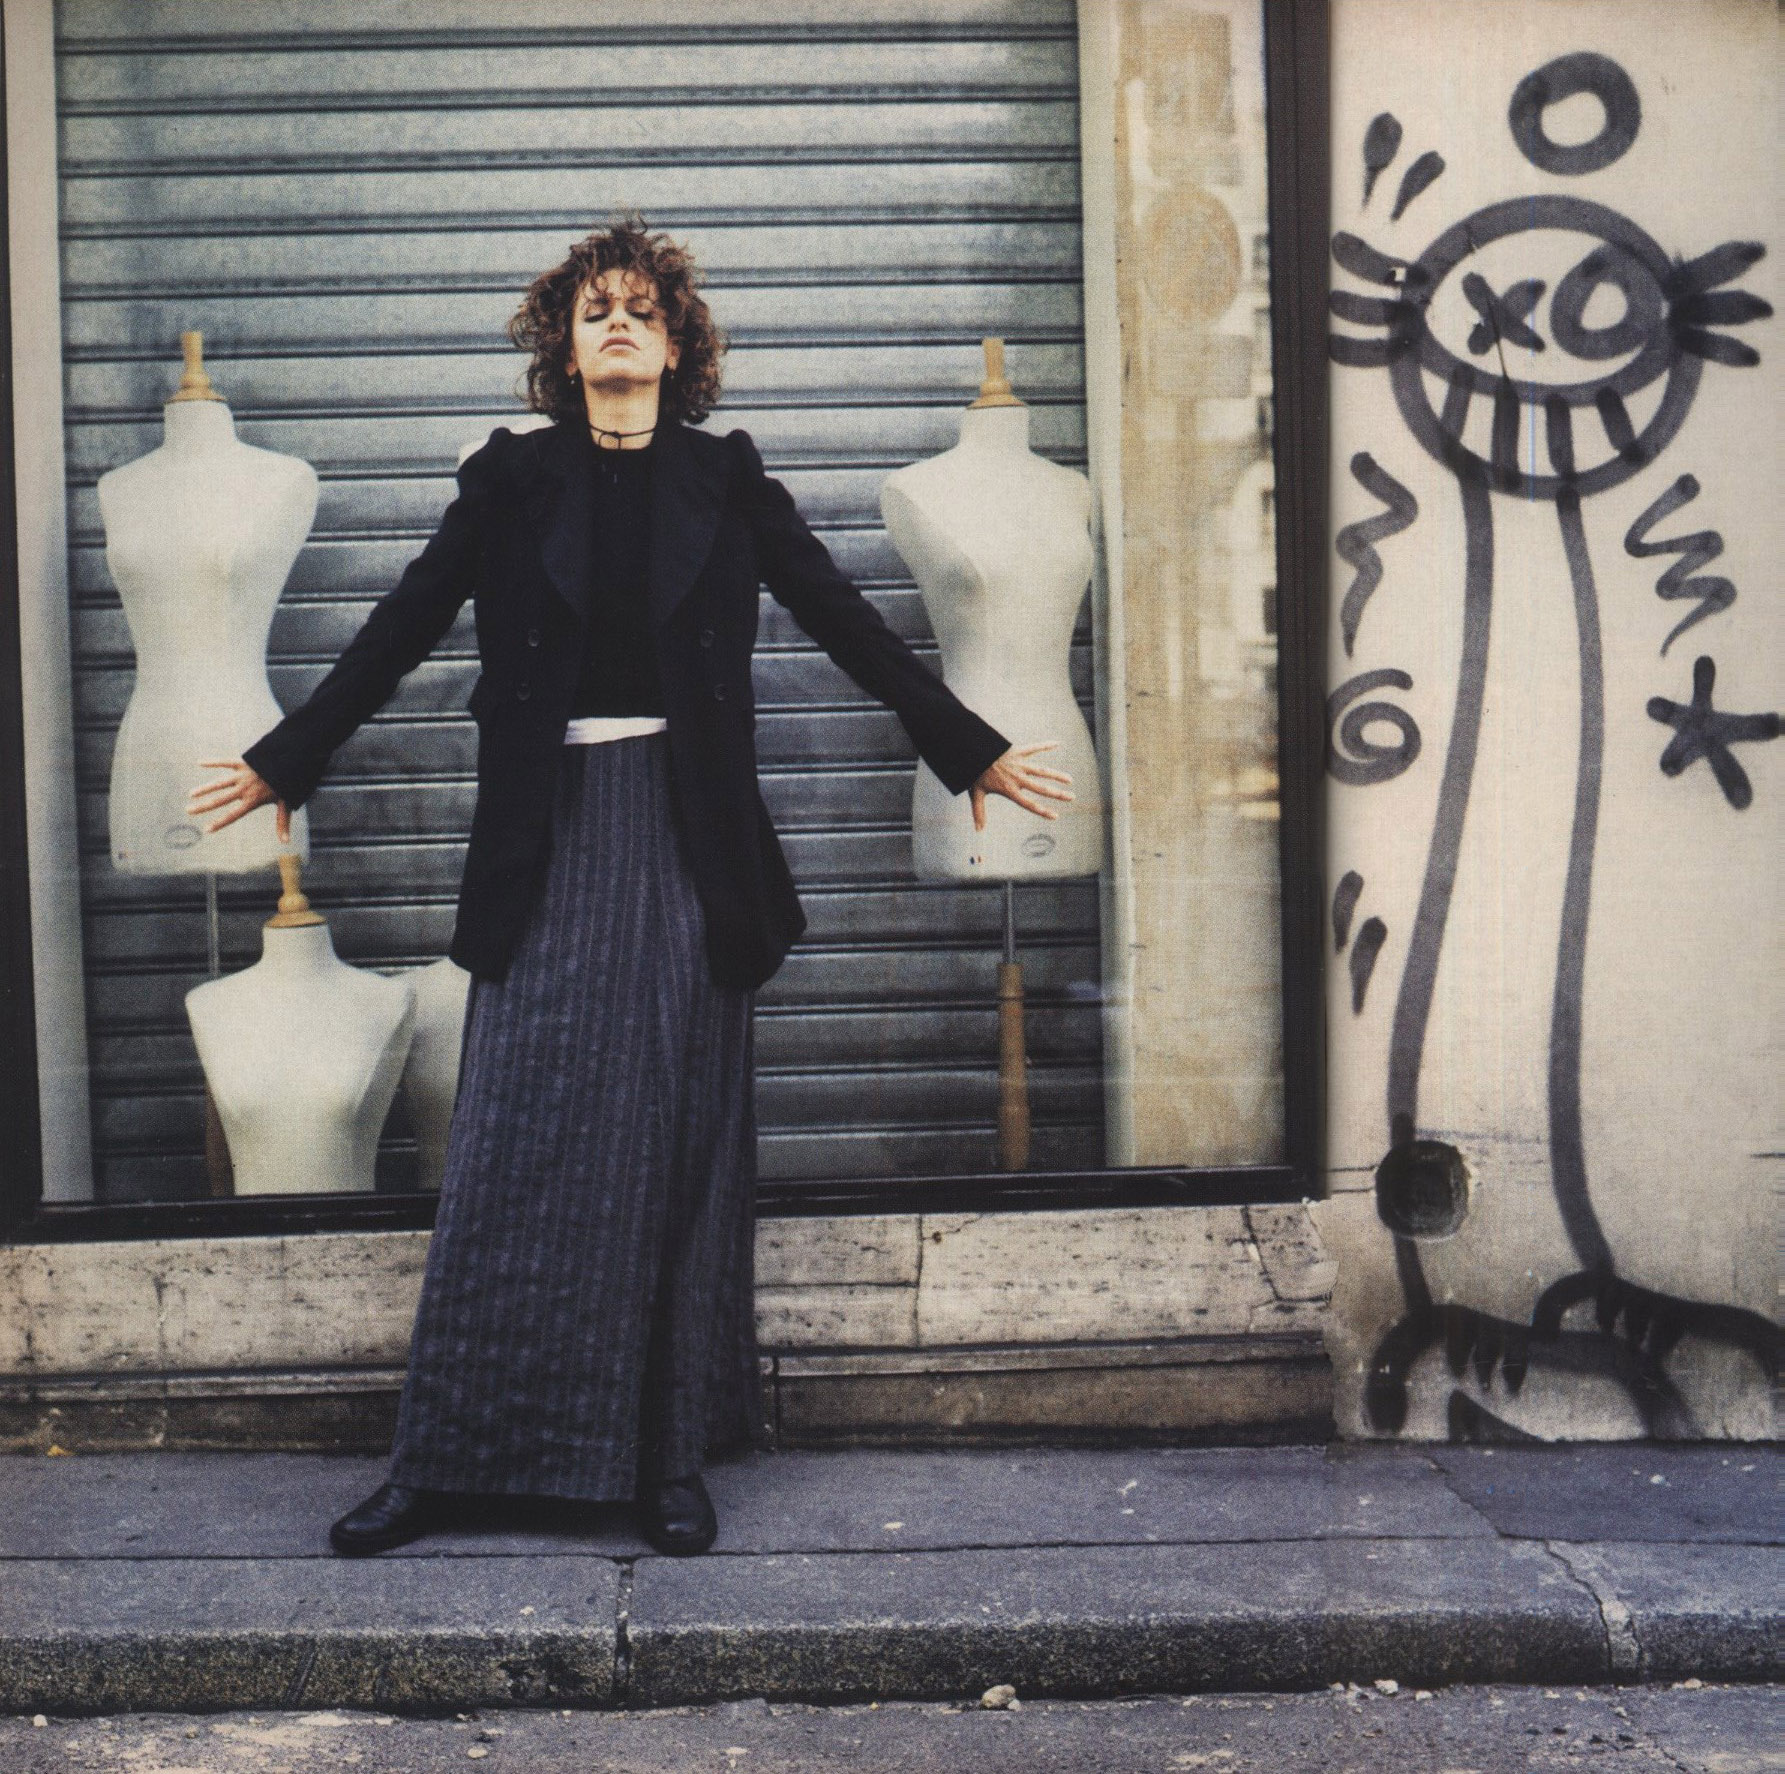 SANDRA BERNHARD ALL CLOTHES MARTIN MARGIELA PHOTOGRAPHY JEAN-BAPTISTE MONDINO STYLING ELISABETH DJIAN THE FACE NO 48 SEPTEMBER 1992